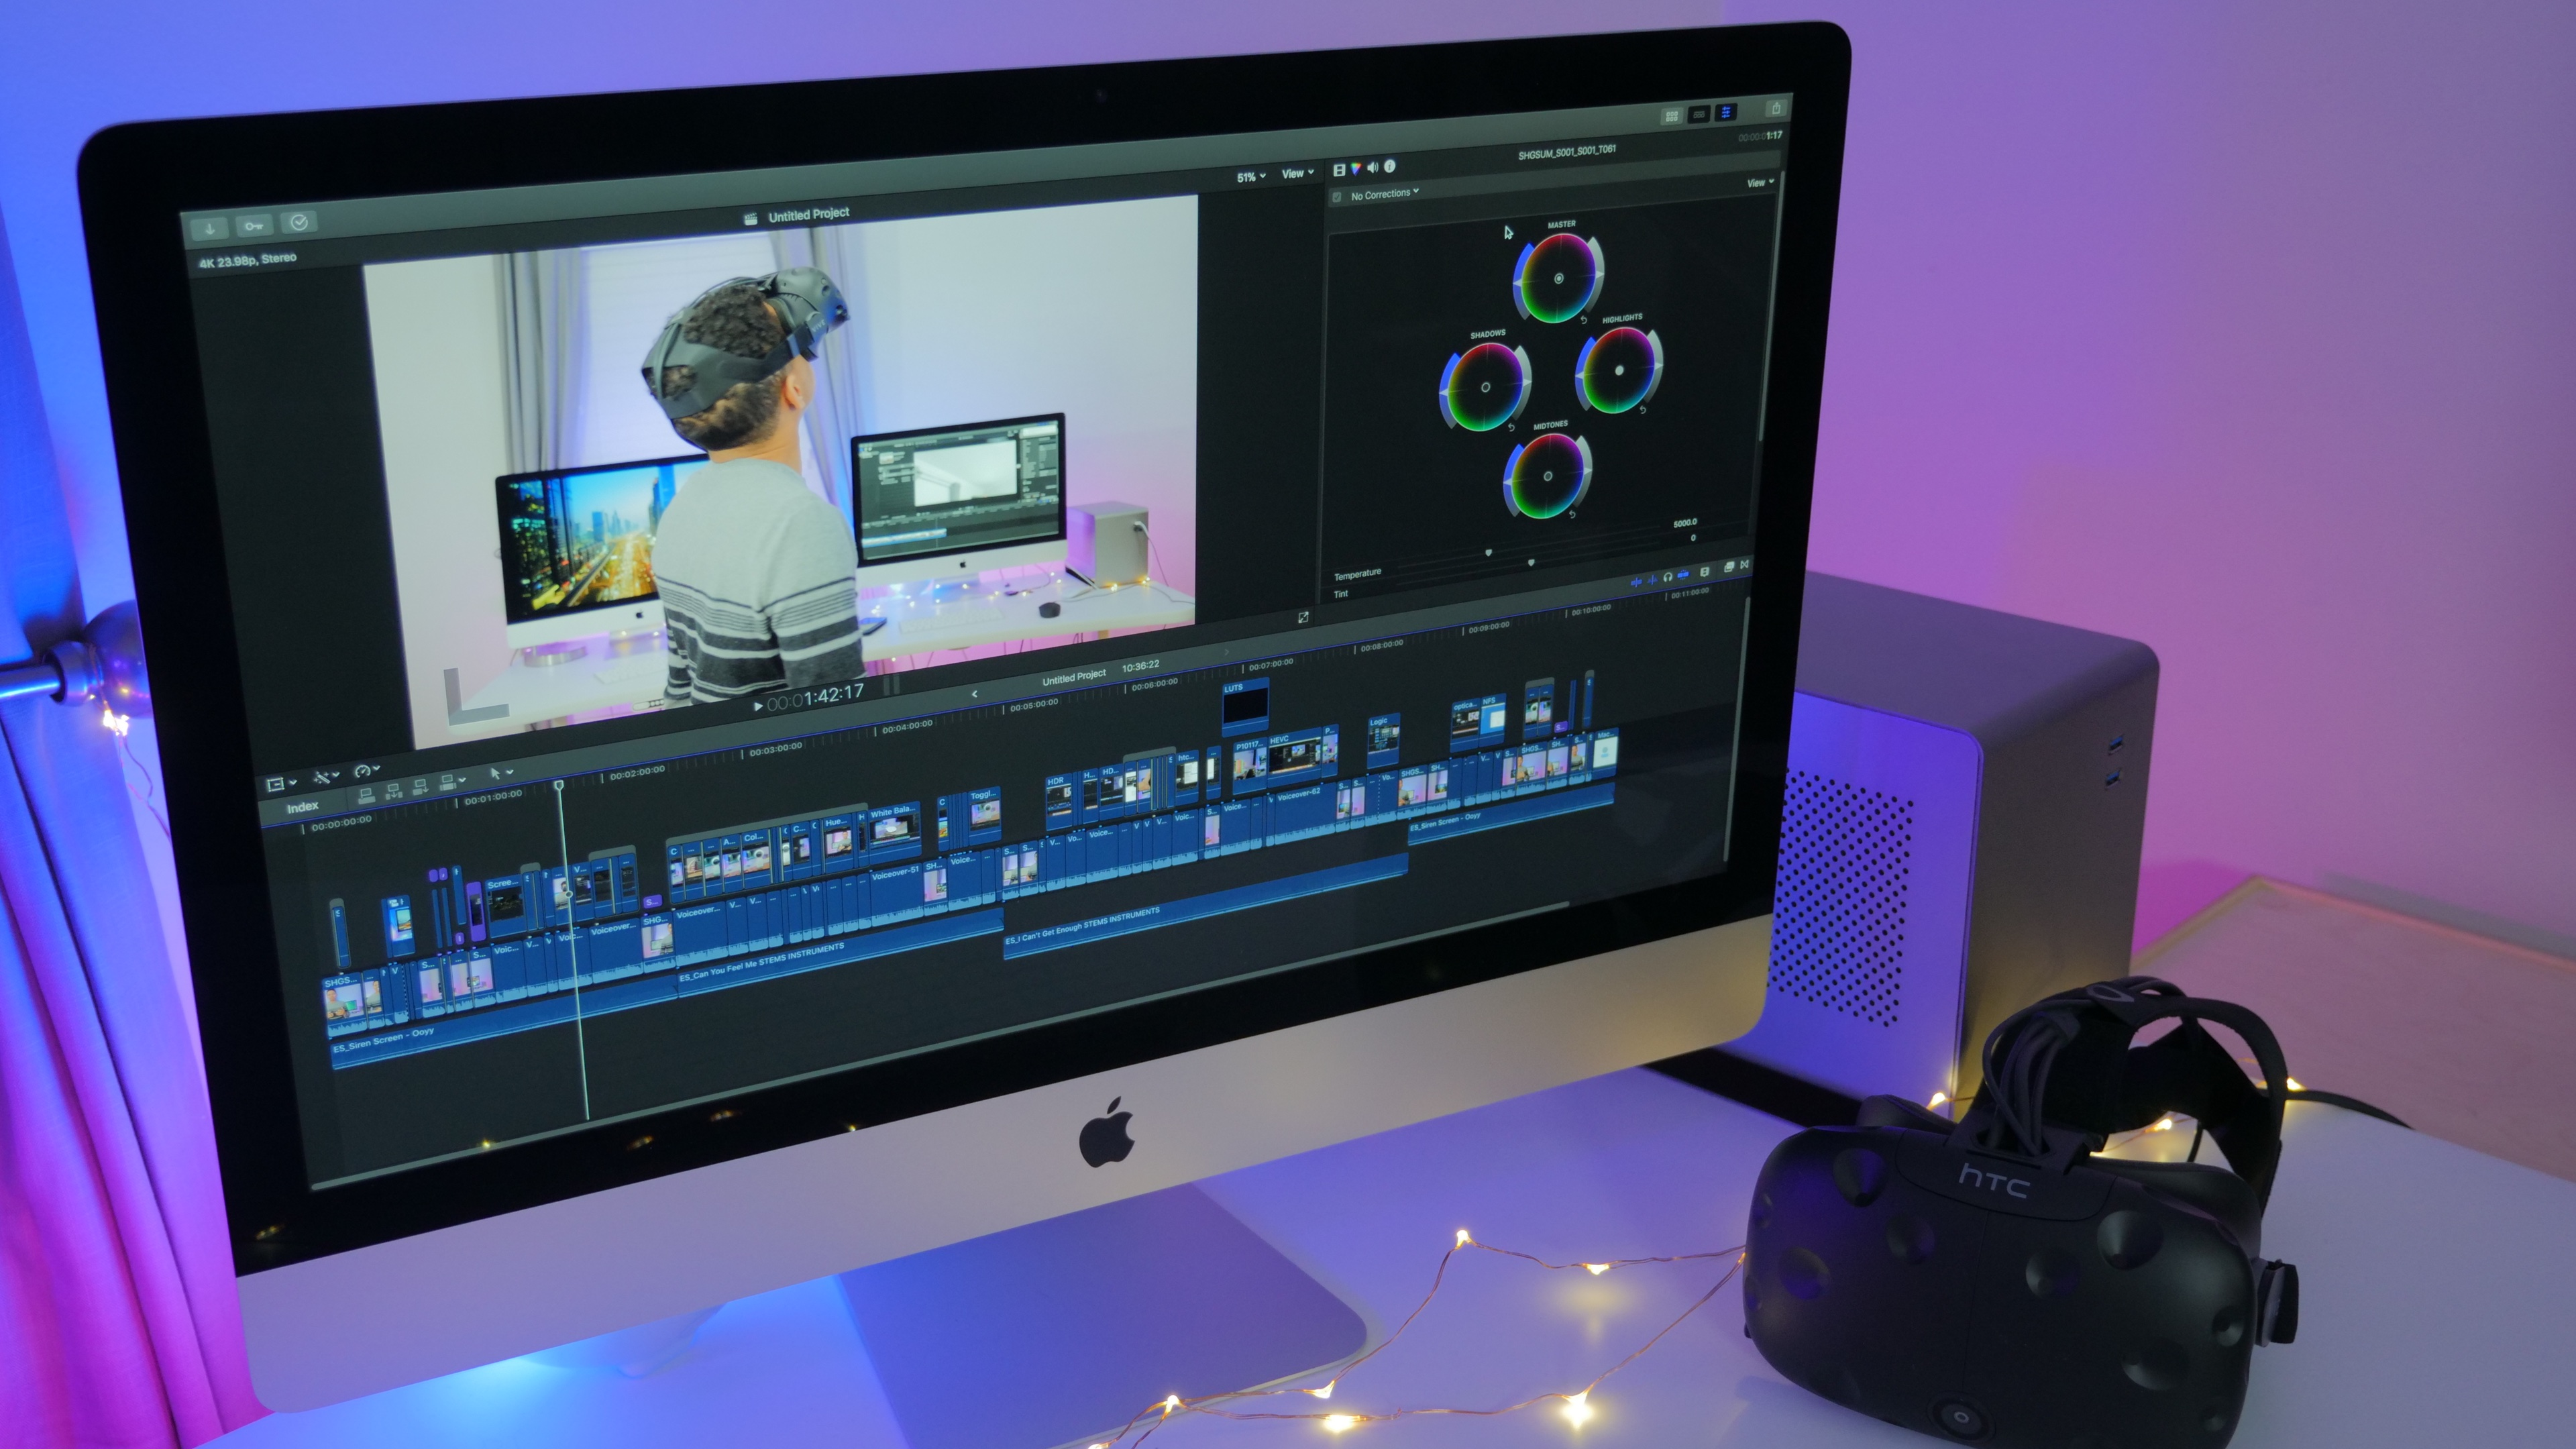 Hands-on: Final Cut Pro 10 4 adds 360 VR, advanced color